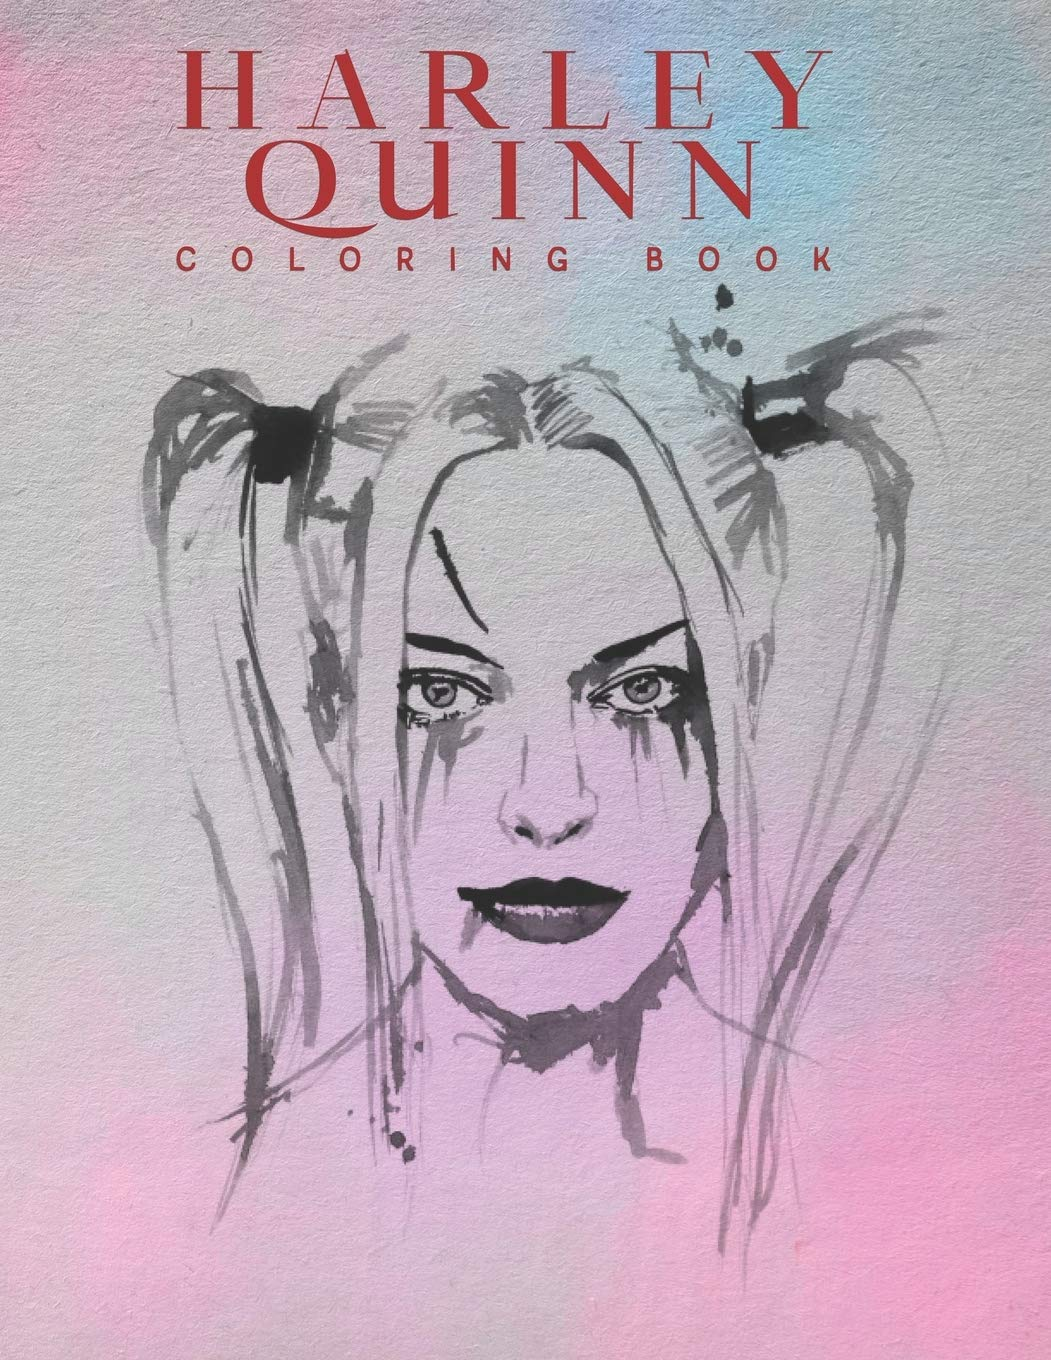 - Amazon.com: Harley Quinn Coloring Book: Harley Quinn Coloring Book For  Adults, Activity Book, Great Starter Book With Fun, Easy, And Relaxing  Coloring Pages - 50 Pages - 8.5